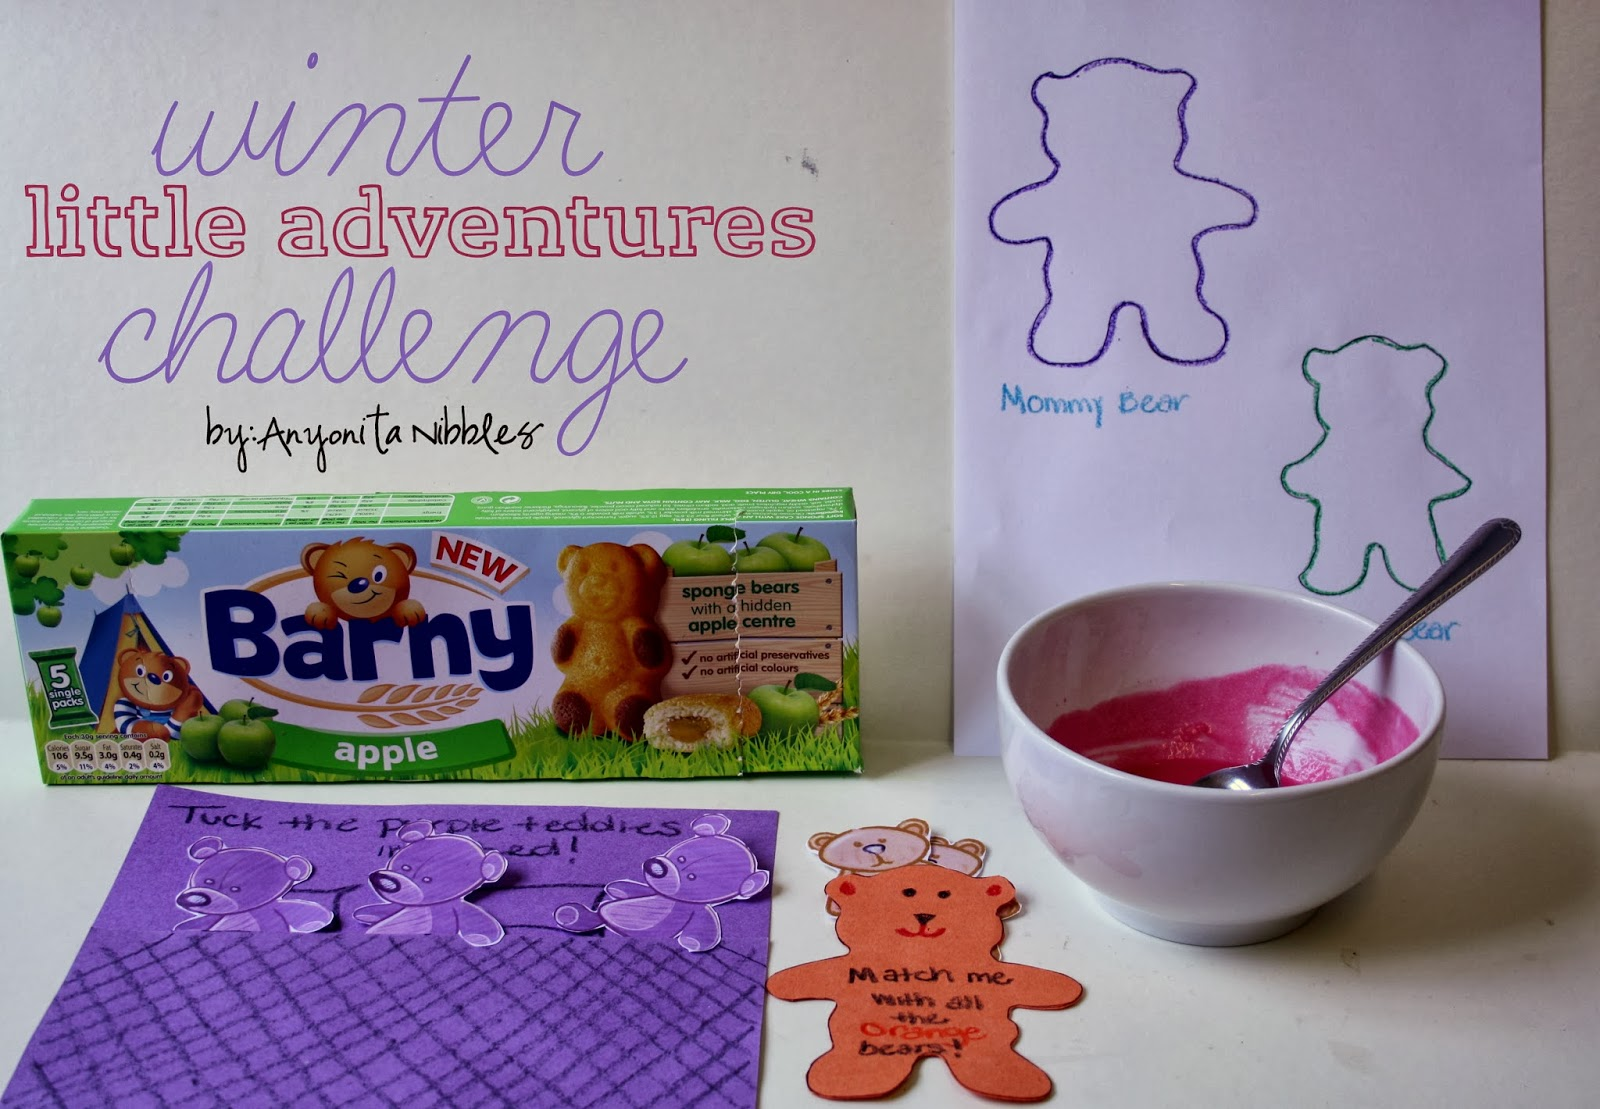 A winter #littleadeventures challenge with a bear theme